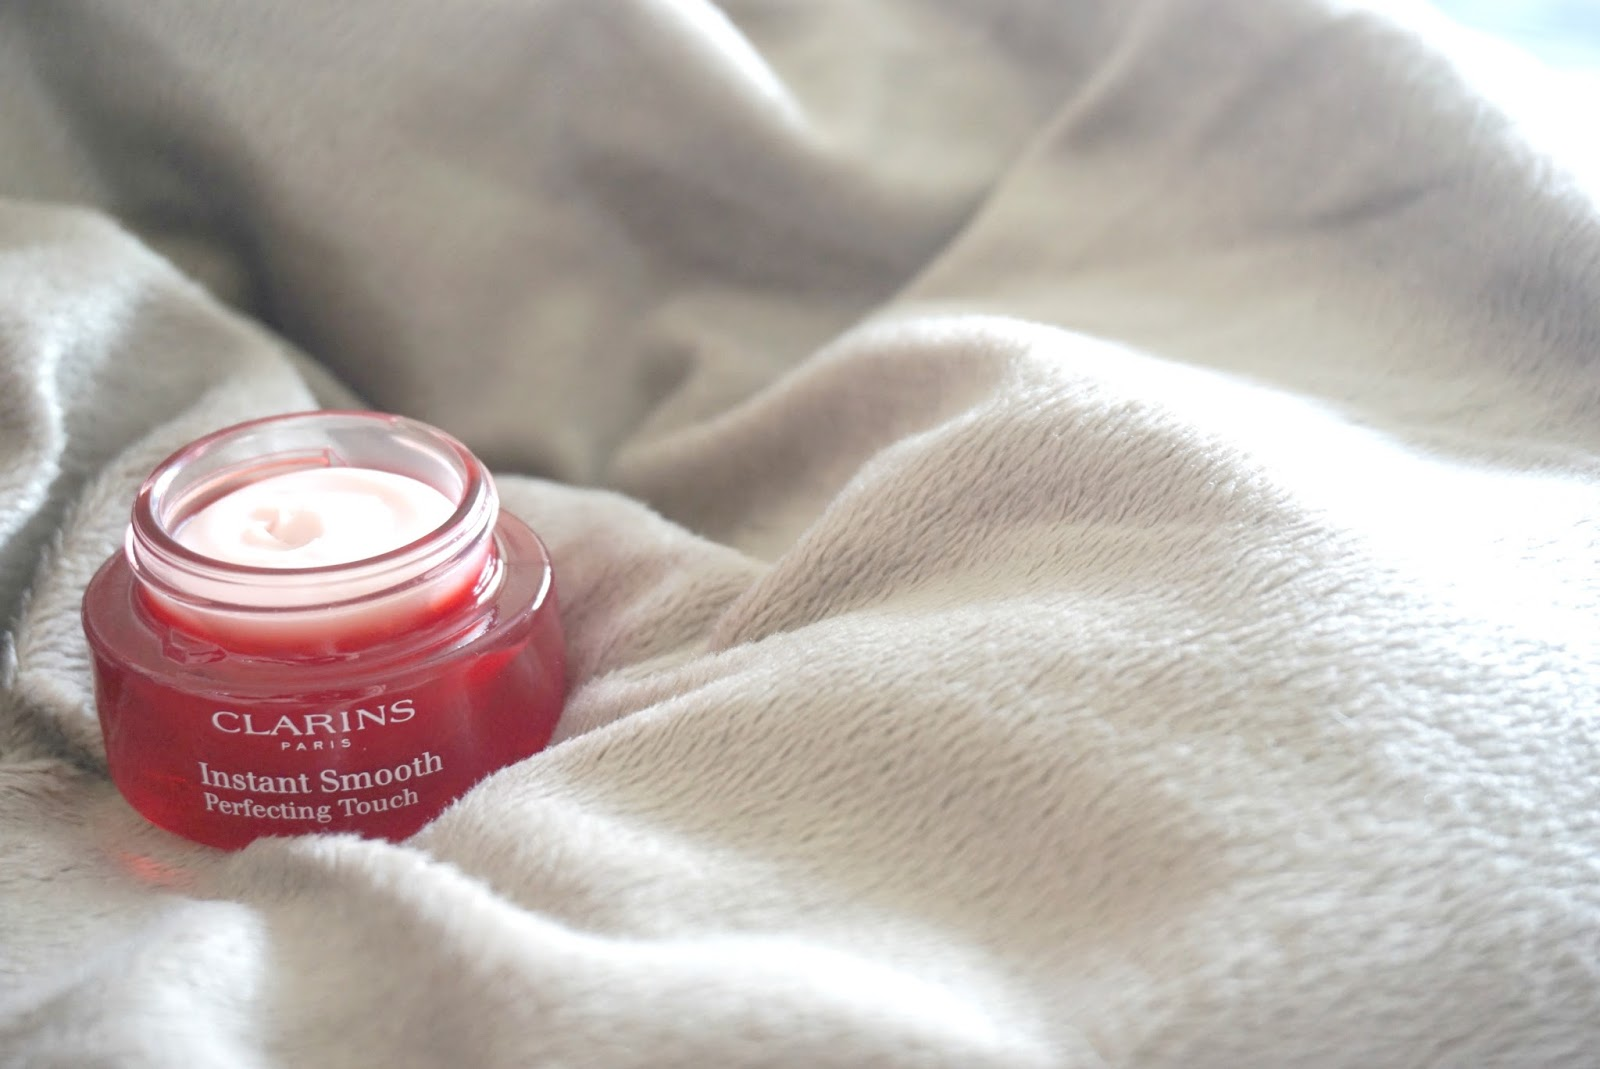 Clarins Instant Smooth Perfecting Touch Primer Review